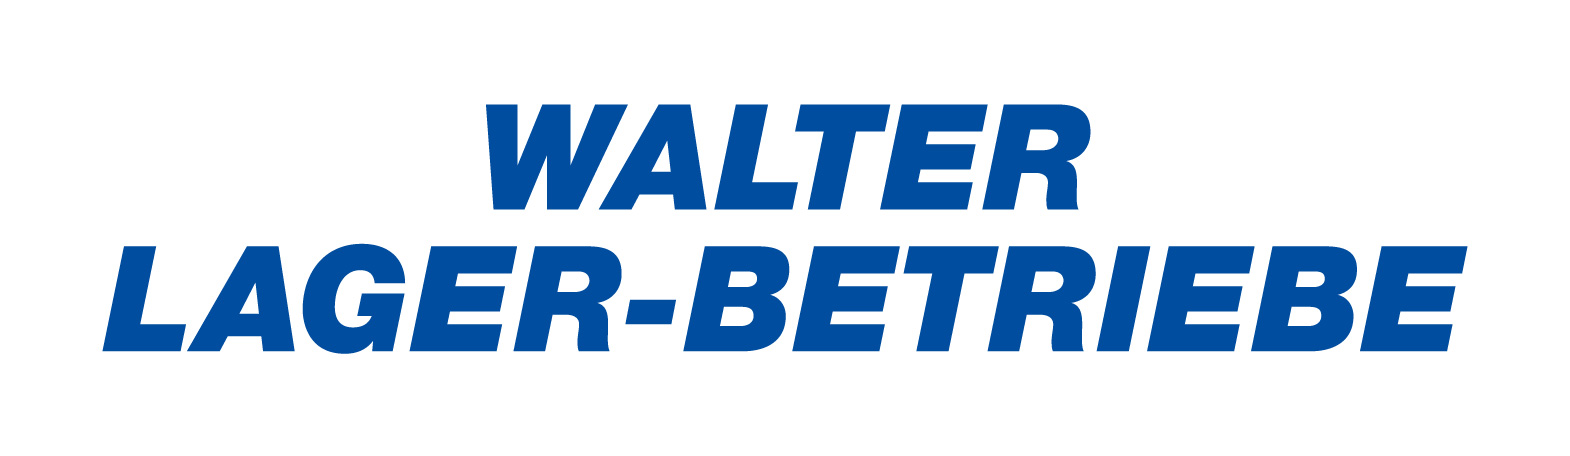 WALTER LAGER-BETRIEBE